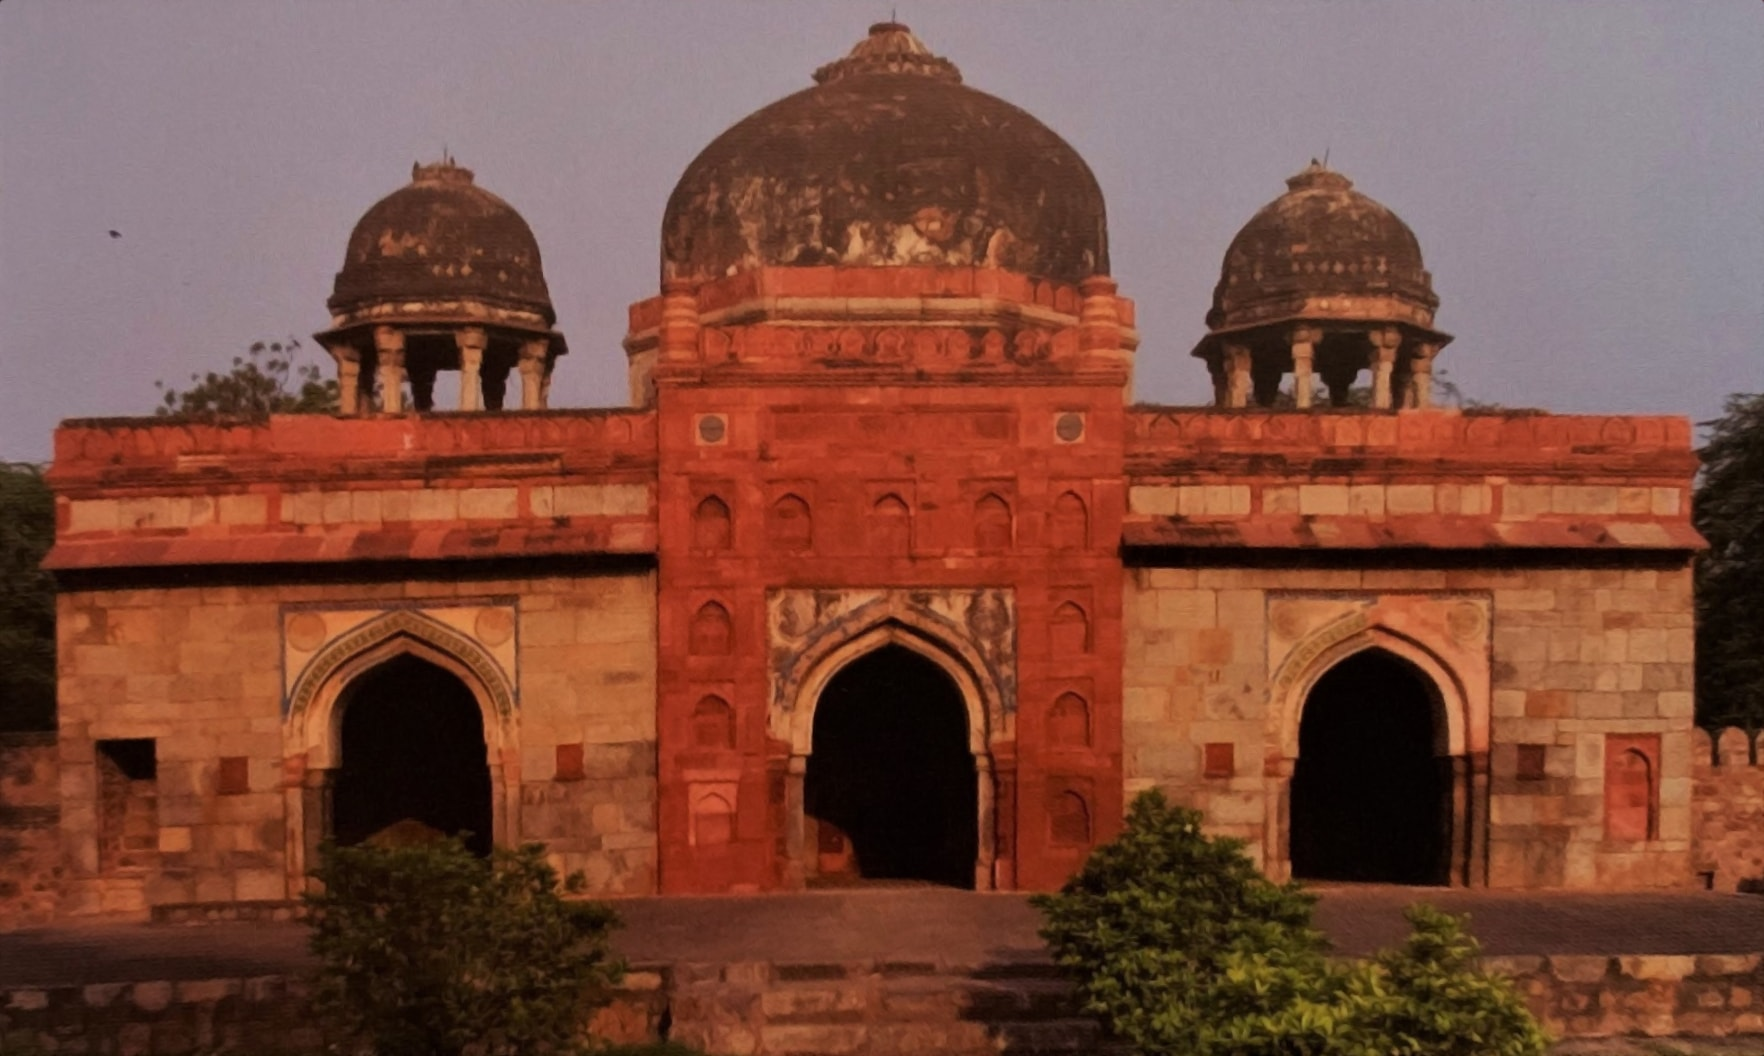 Isa Khan's Mosque (PC - Great Monuments of India)